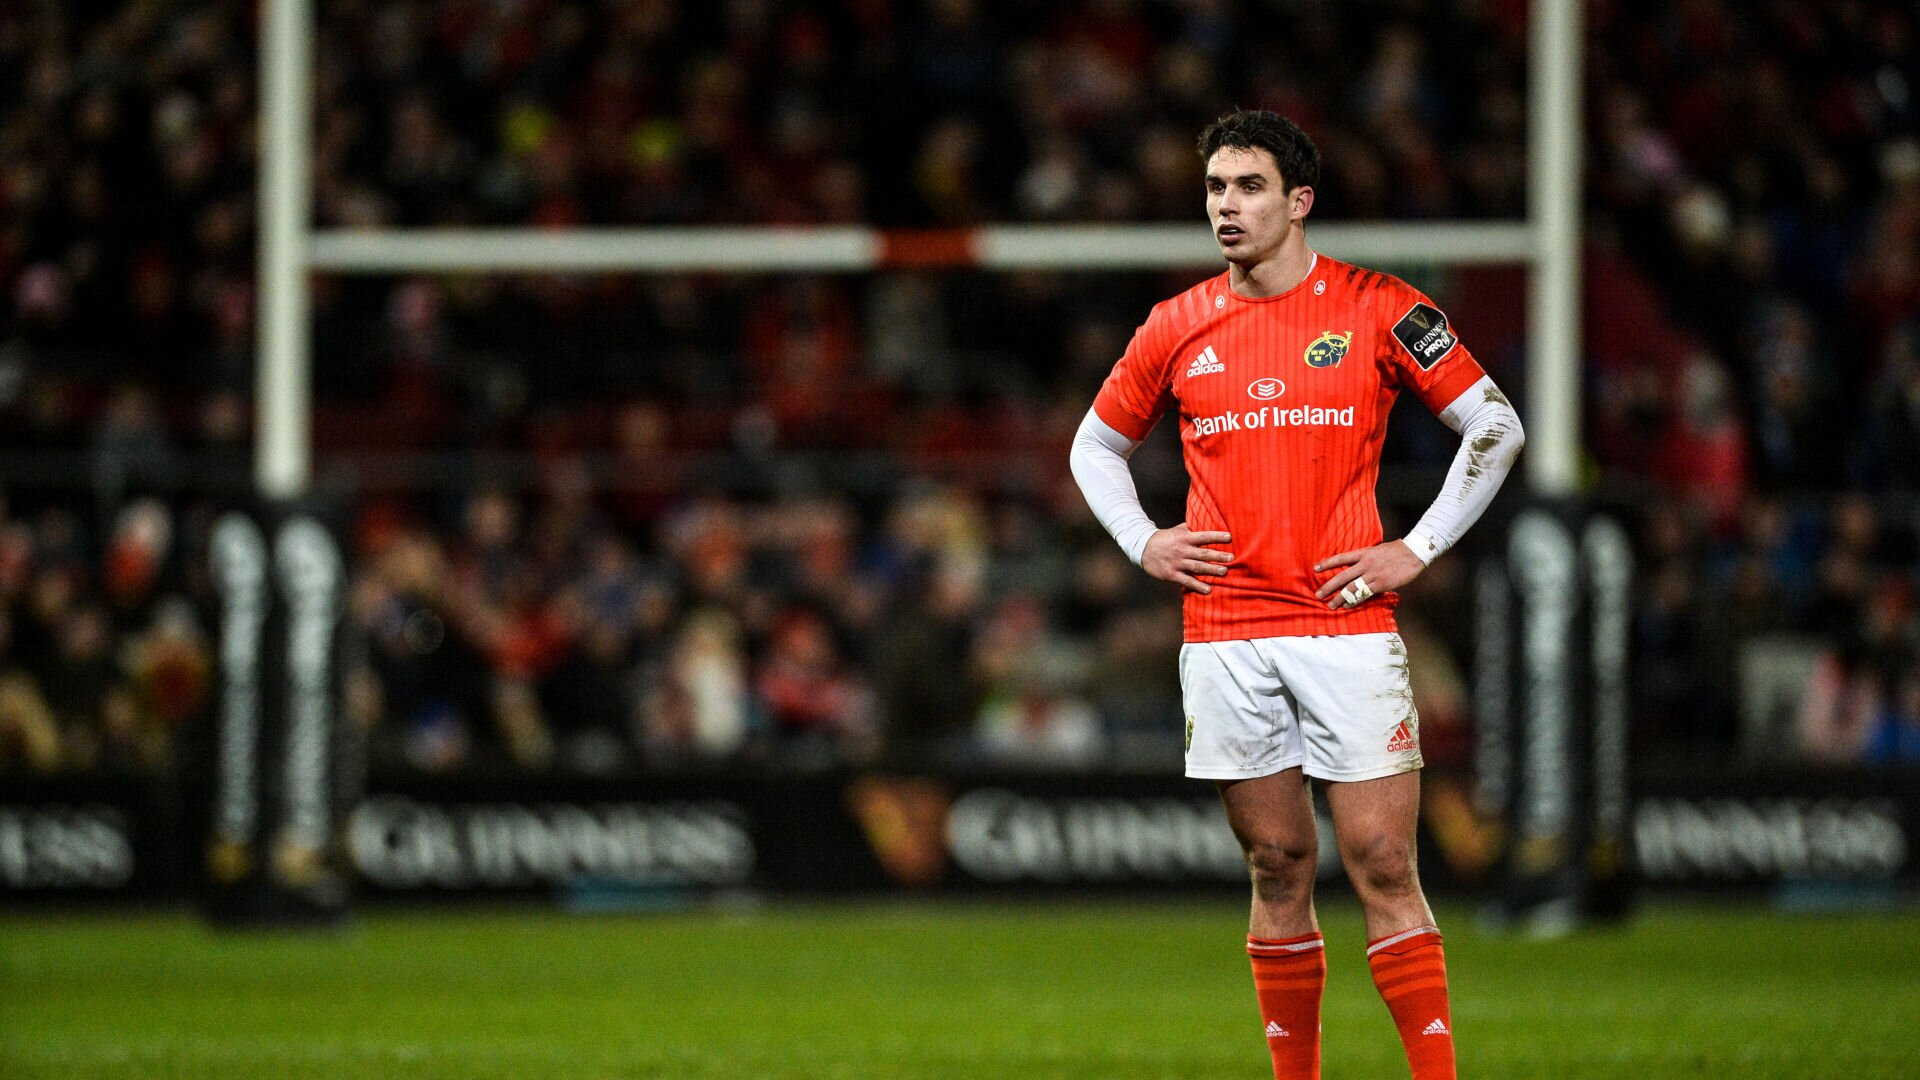 Munster Joey Carbery